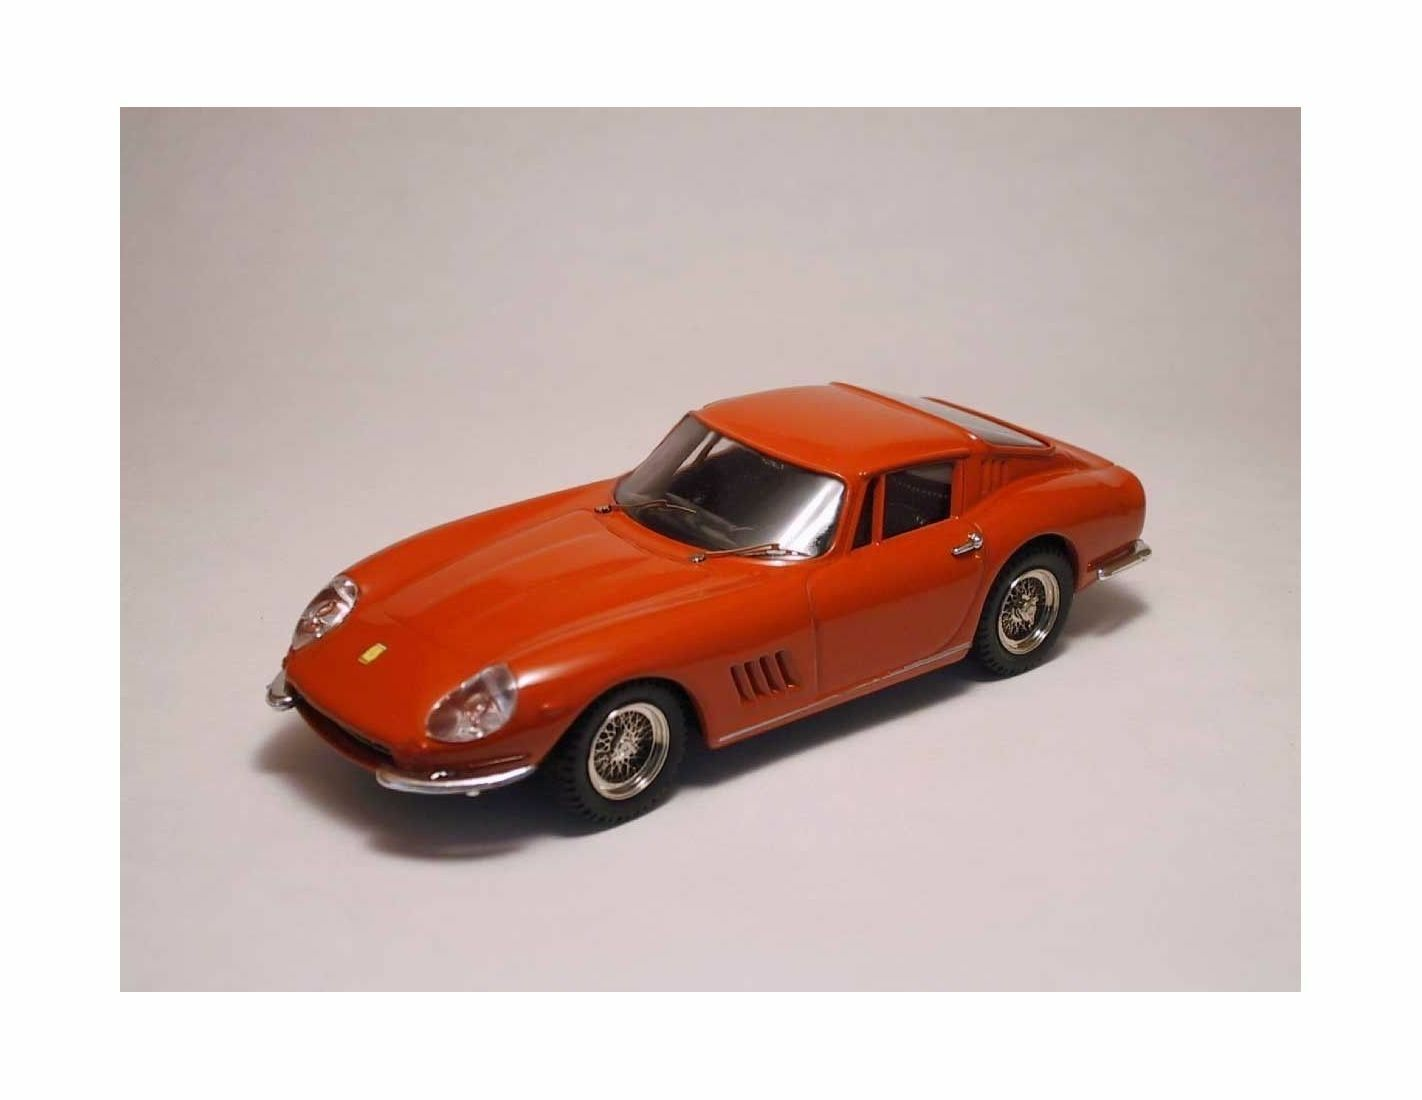 Best Model BT9001 FERRARI 275 GTB/4 COUPE' 1966 rosso 1:43 Modellino